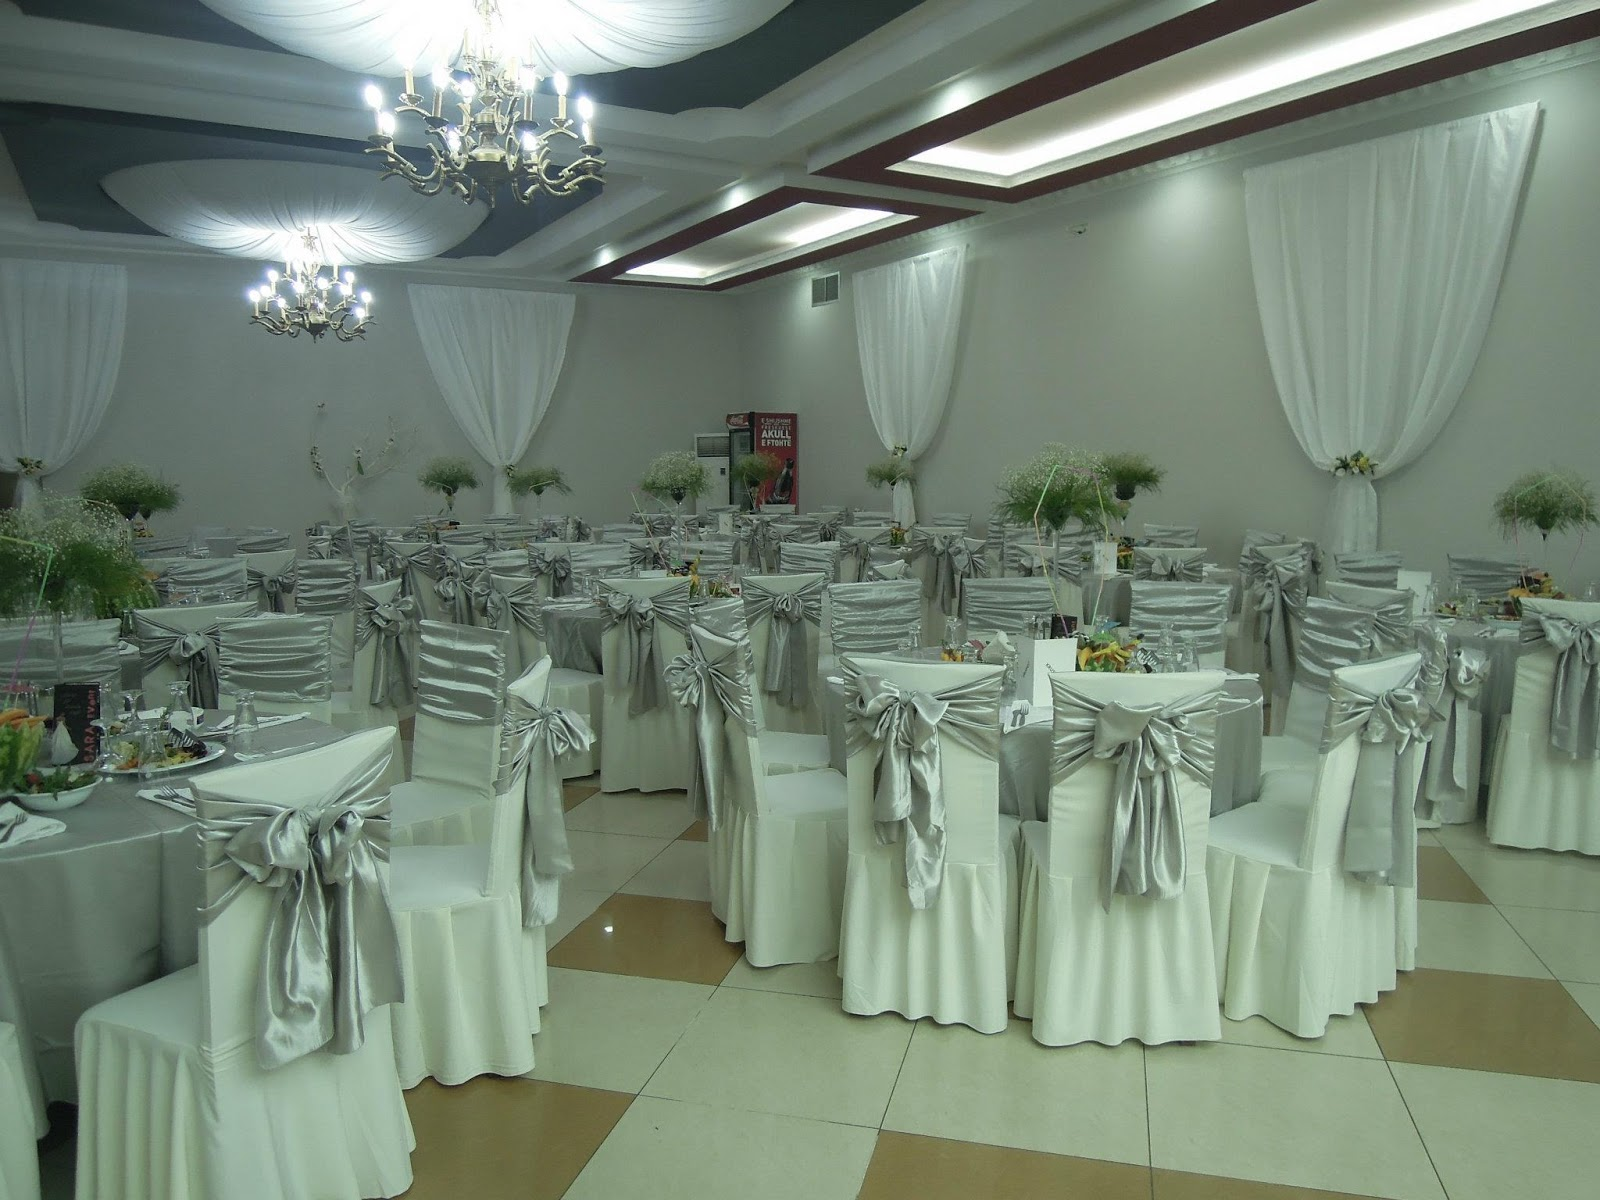 Sara event wedding decorations and i hope to have time to post our job in blogi want to show some of our jobs that we did last year but they are really beautyenjoy them junglespirit Choice Image